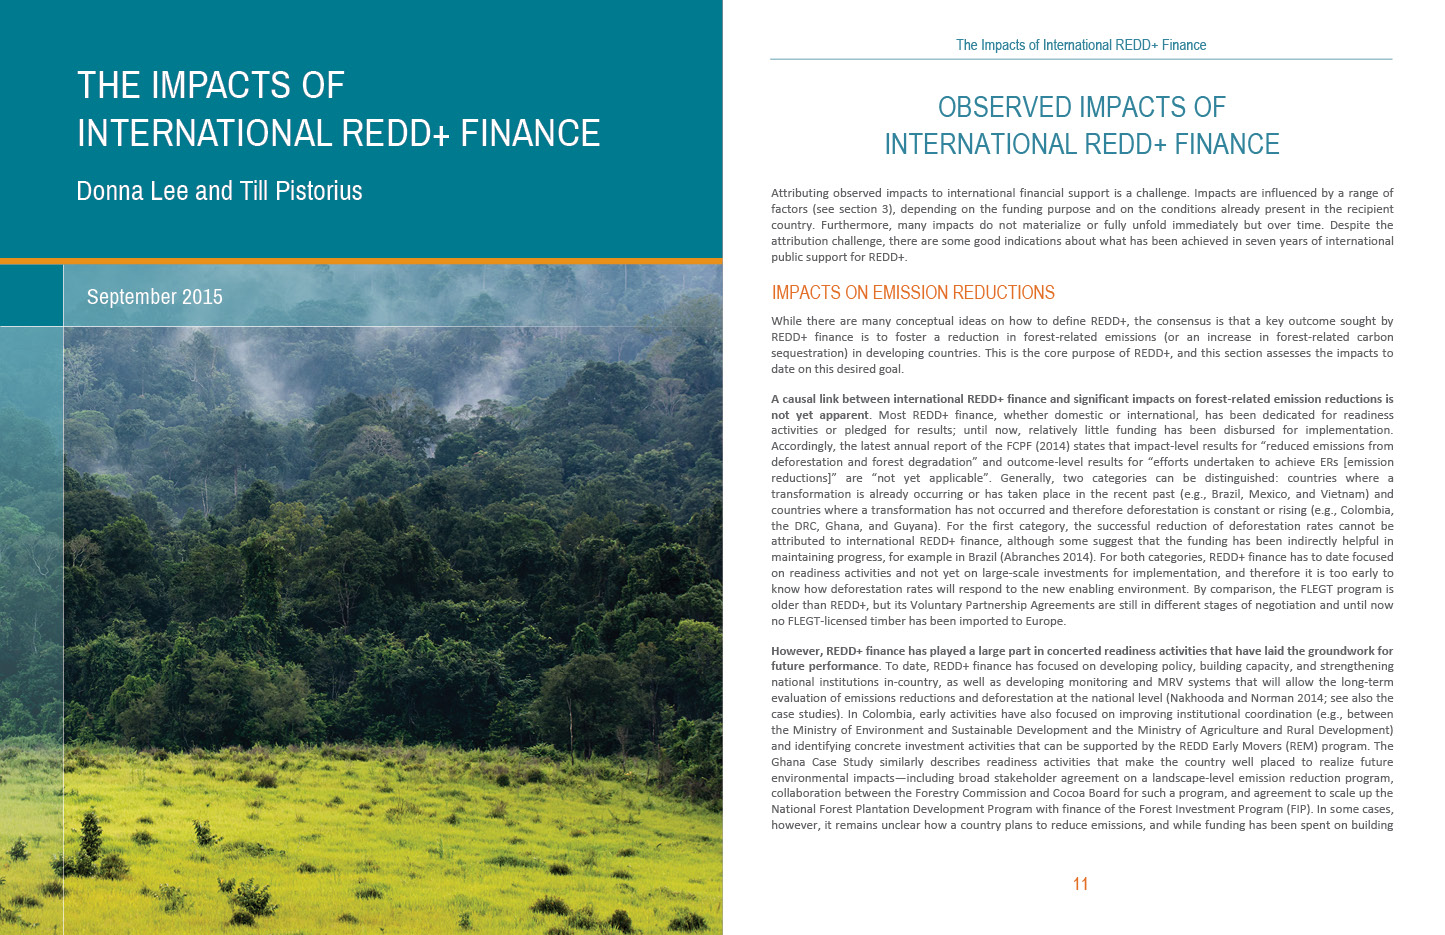 The impacts of international REDD finance